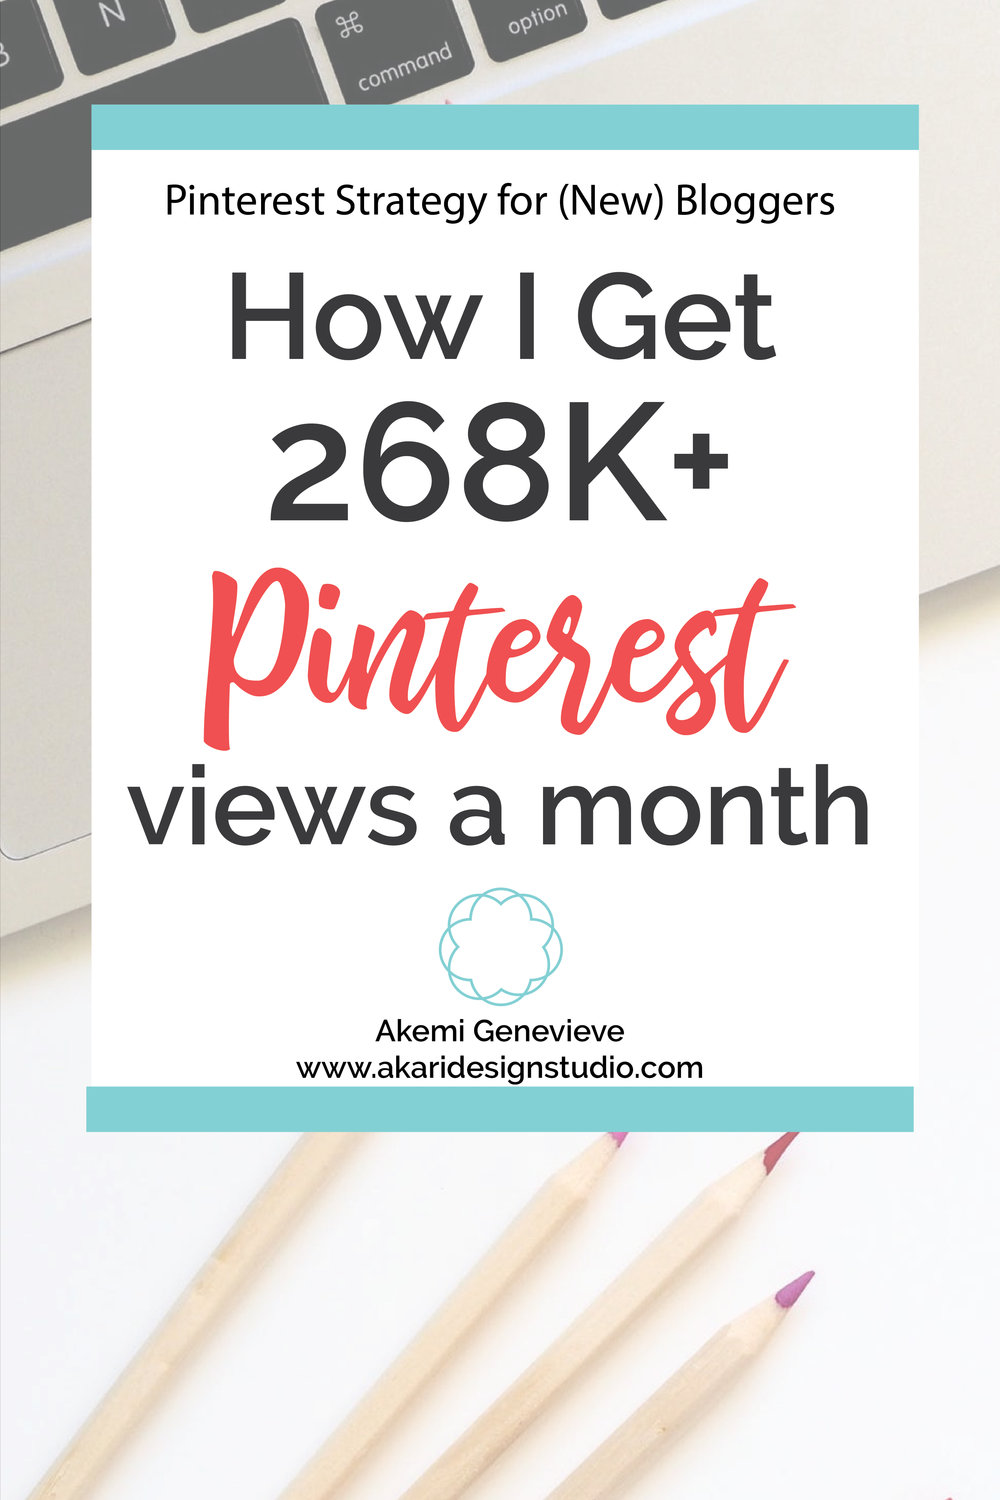 How to grow your pinterest account. Using pinterest to grow you blog.  Pinterest strategies for bloggers.